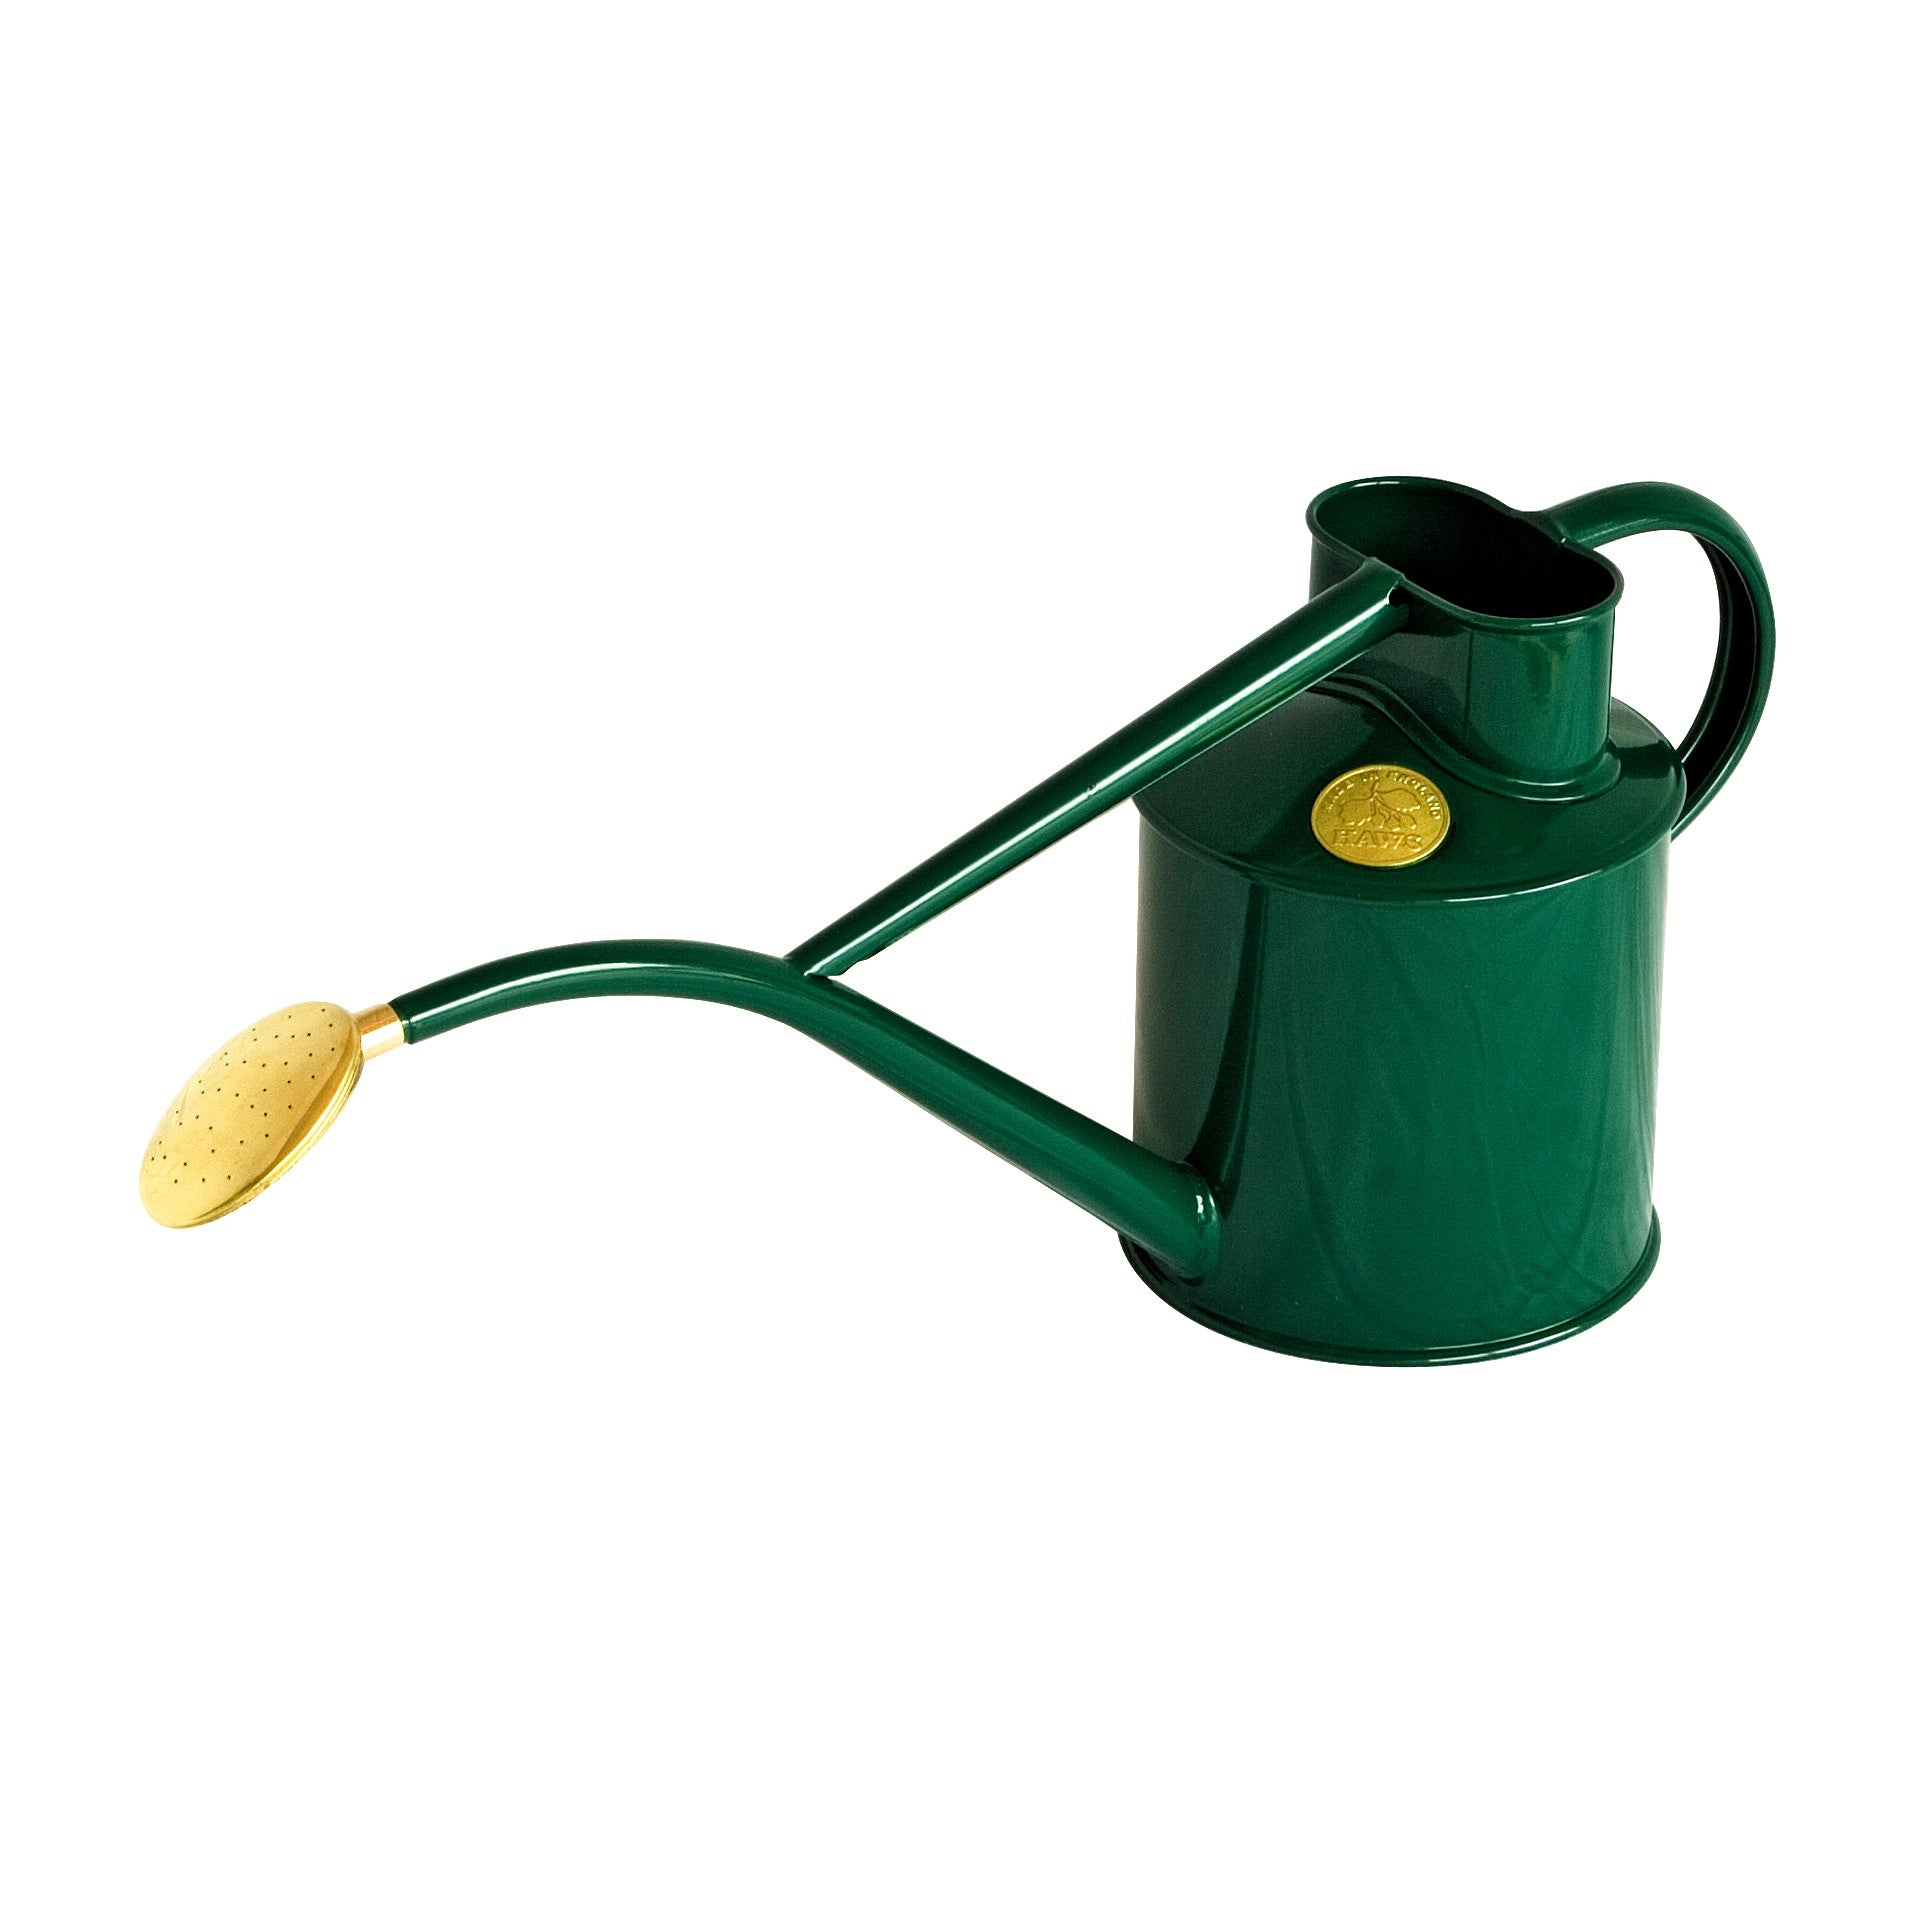 Haws 1 Litre Watering Can - Gift Boxed - The Potting Shed Garden Tools